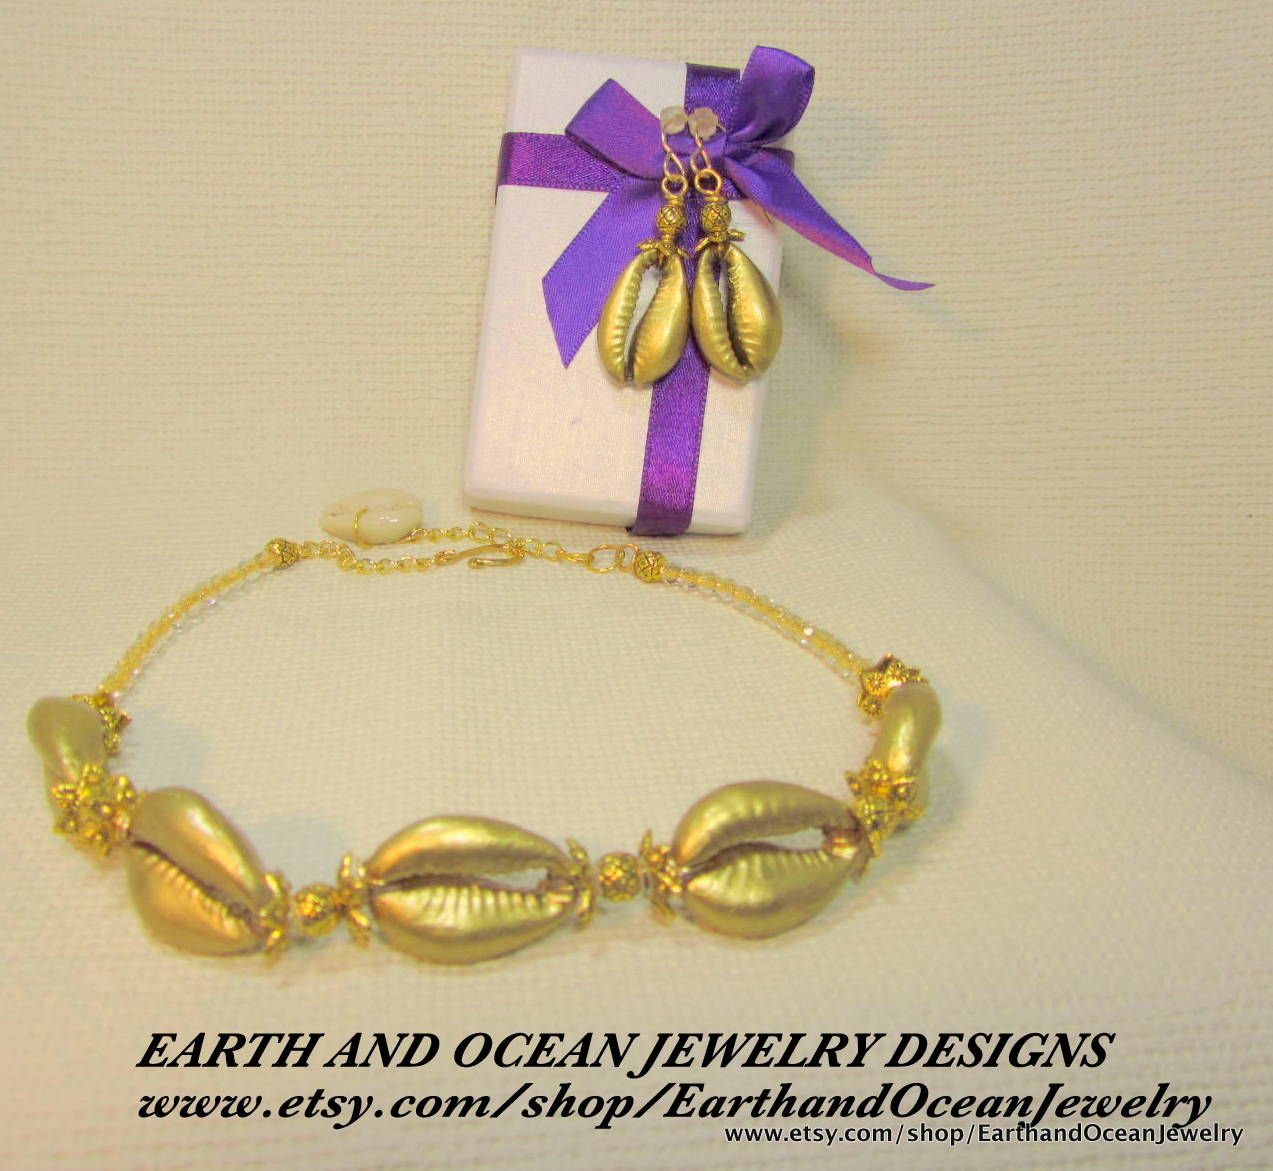 The Golden Goddess Necklace Set available at Earth and Ocean Jewelry